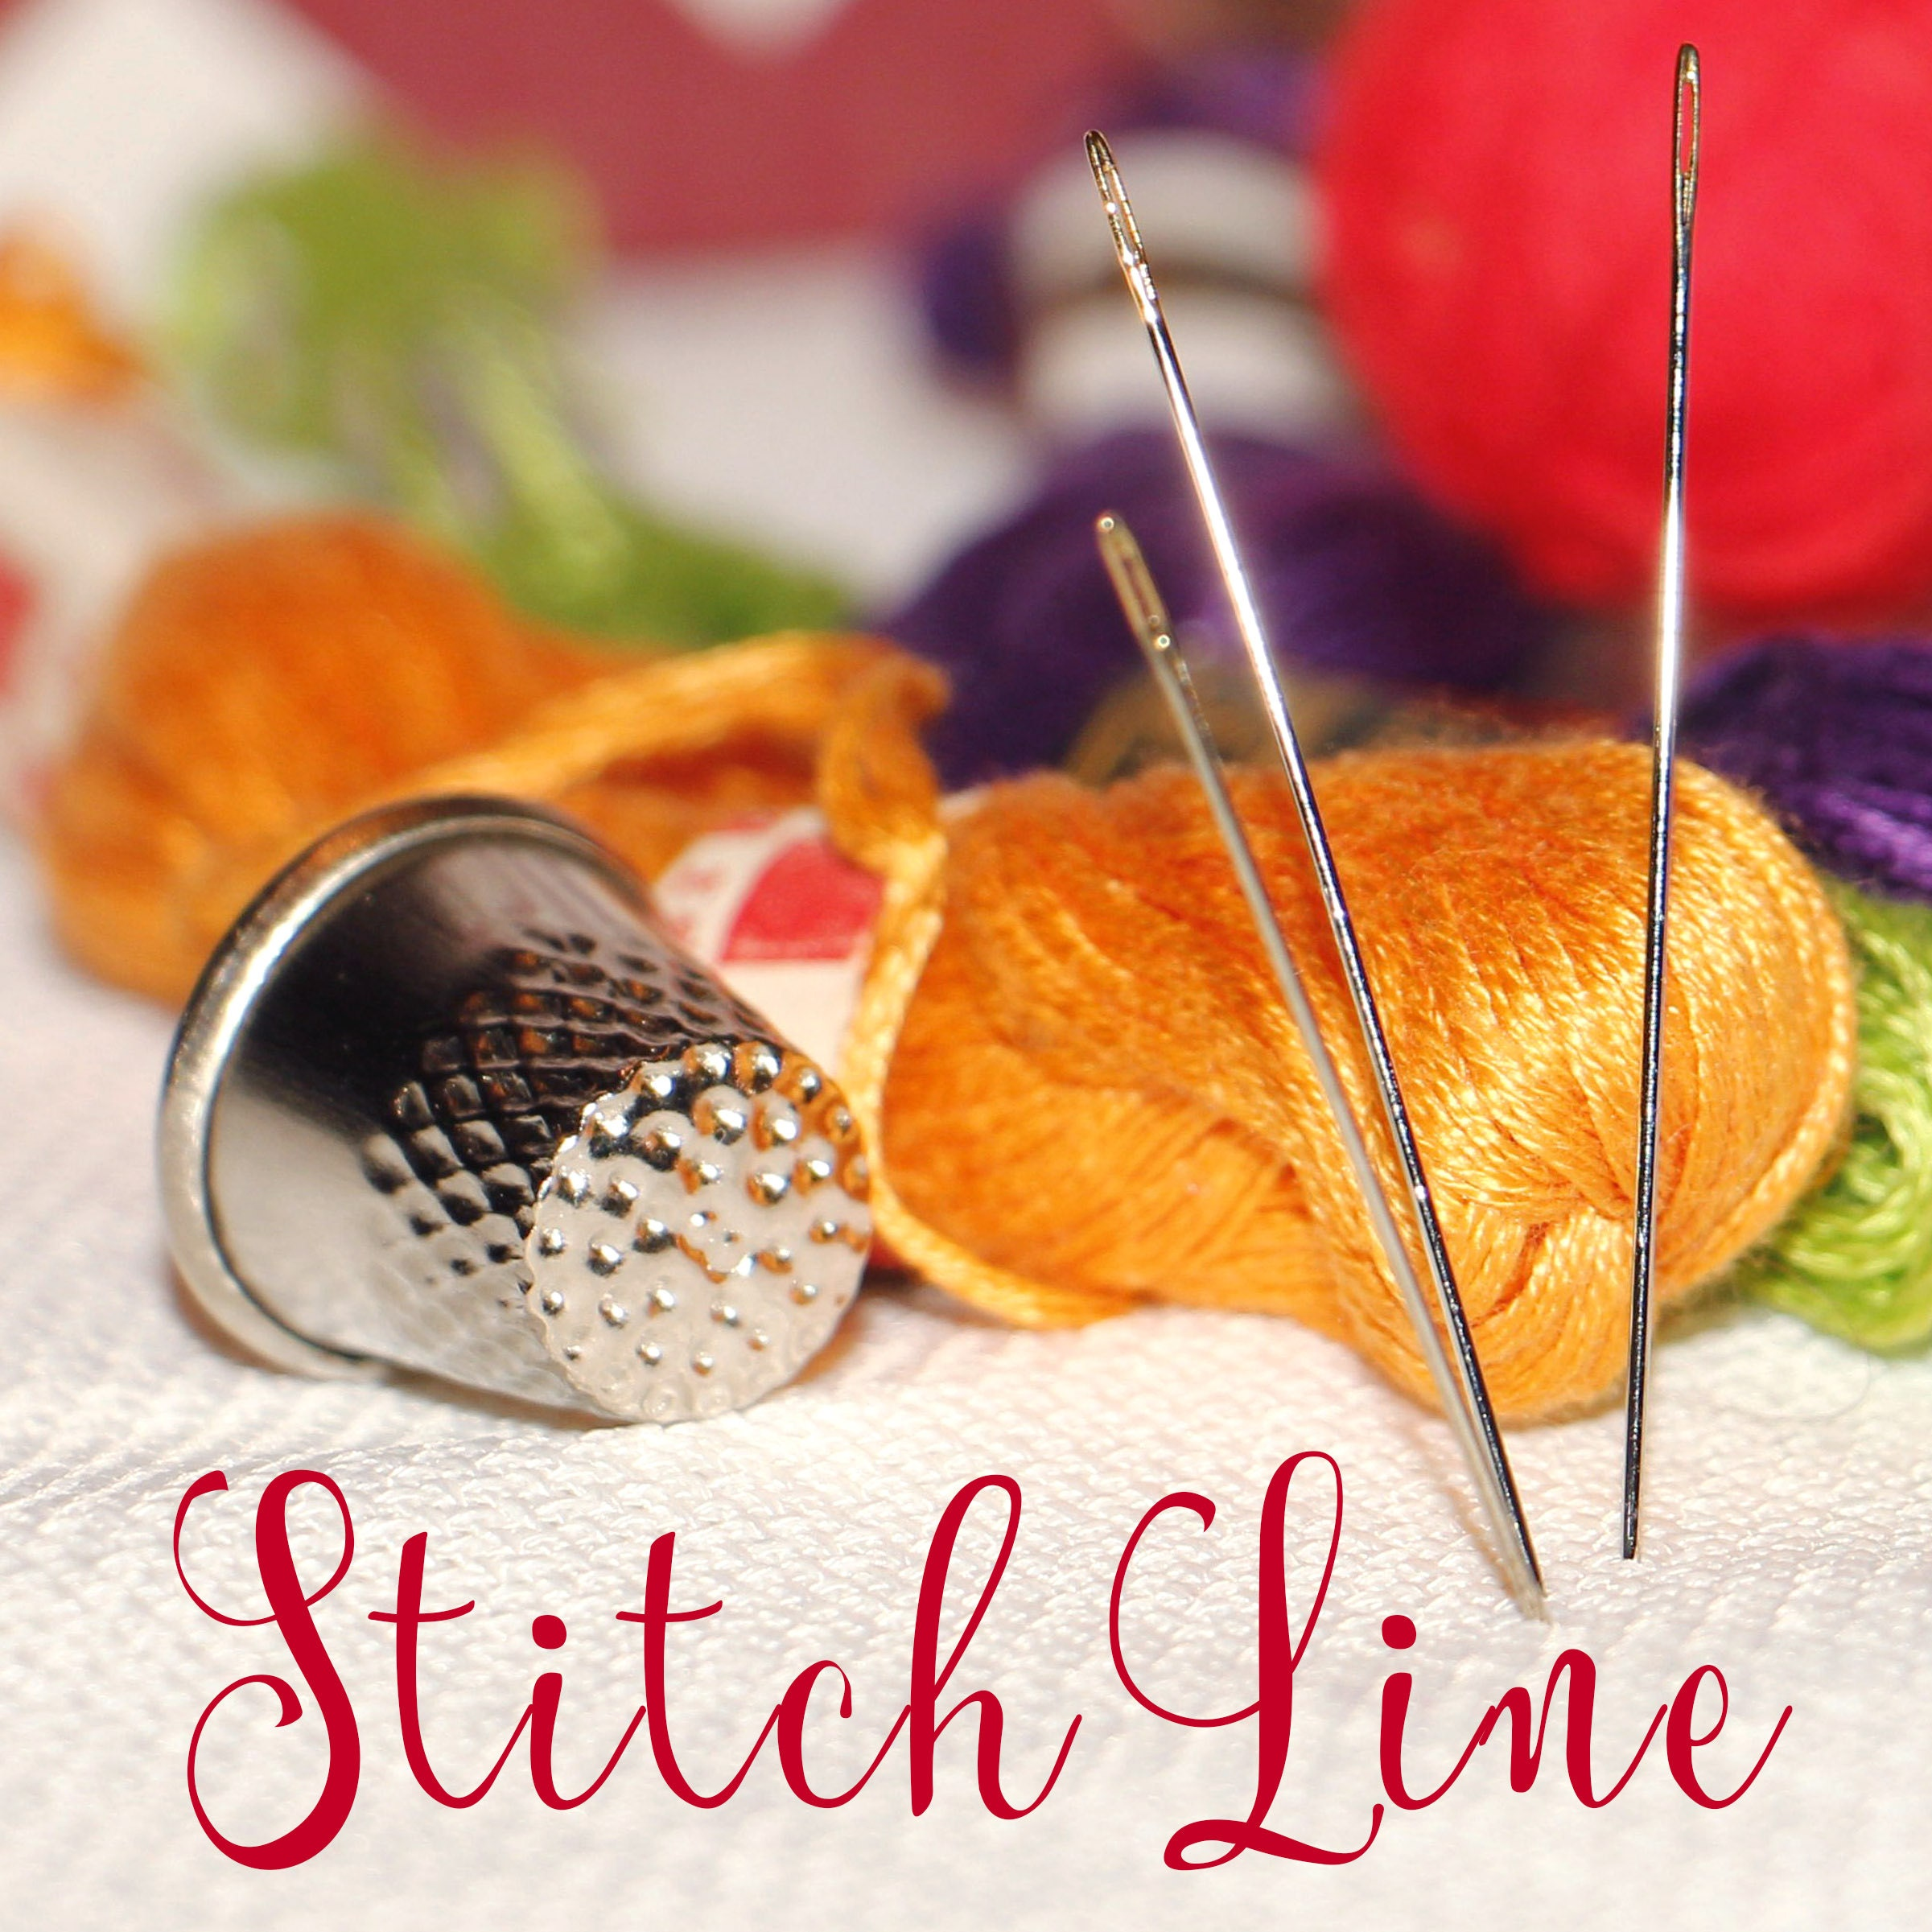 Happy shopping and stitching by StitchLine on Etsy